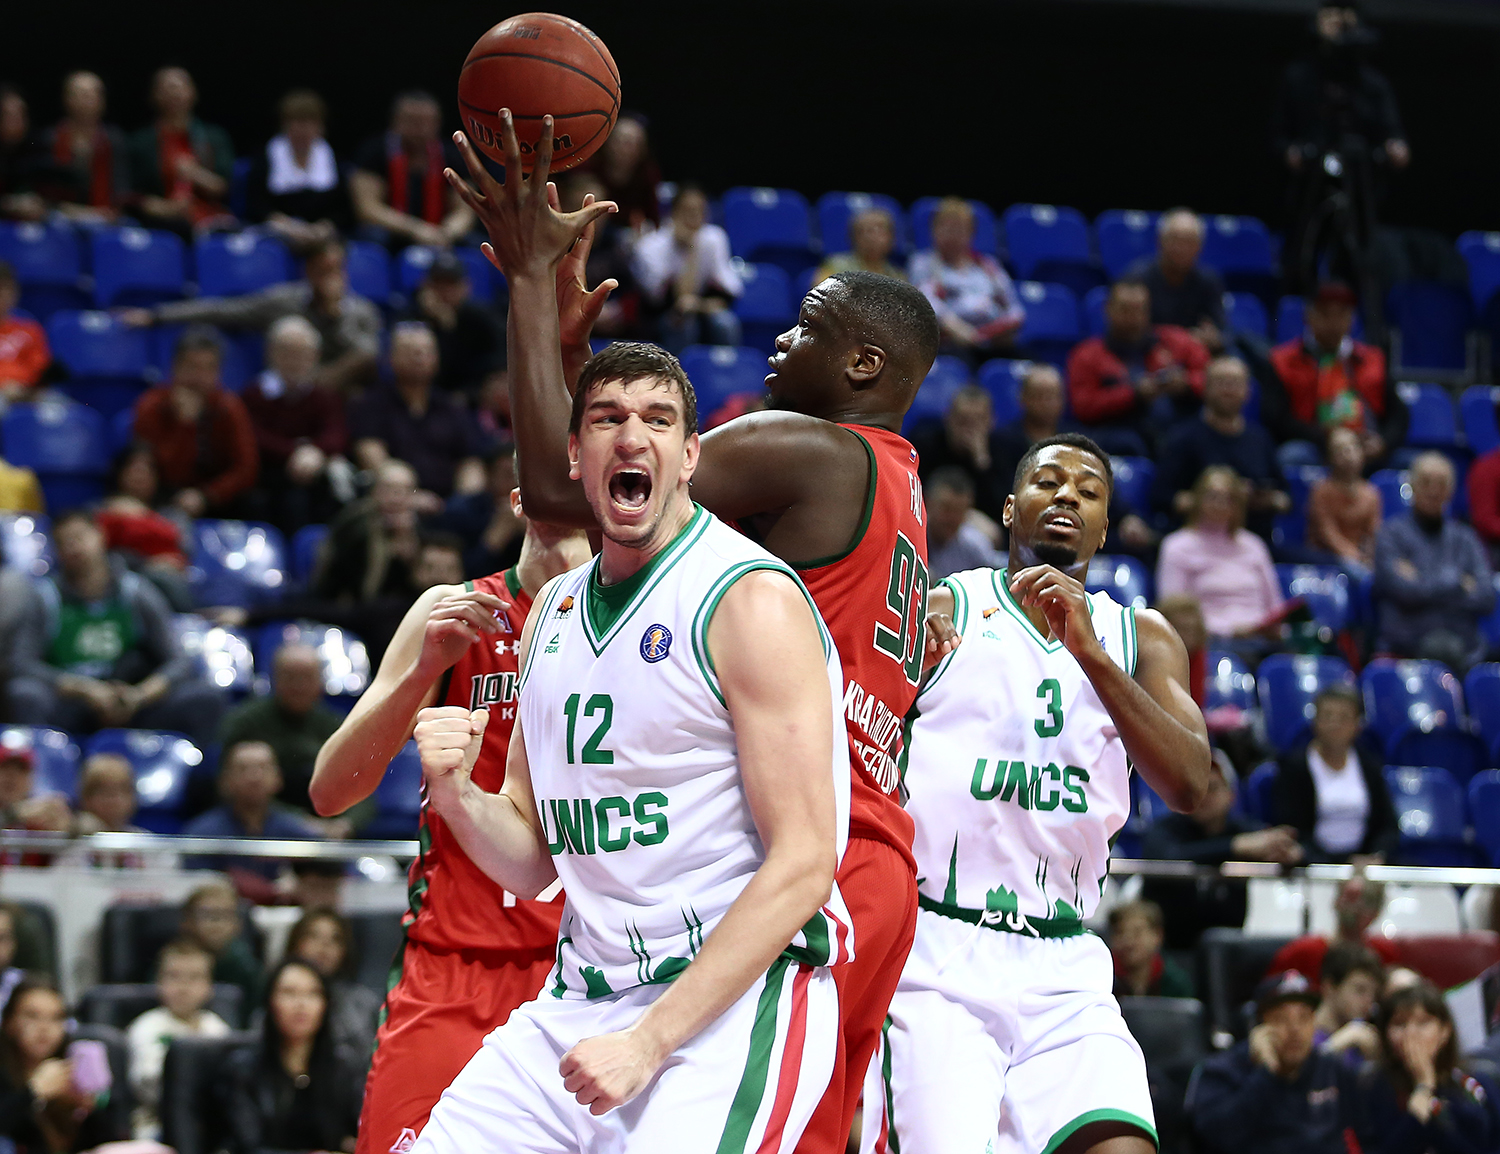 Week 21 In Review: UNICS Protects 2nd Place In Krasnodar, VEF Continues To Surprise